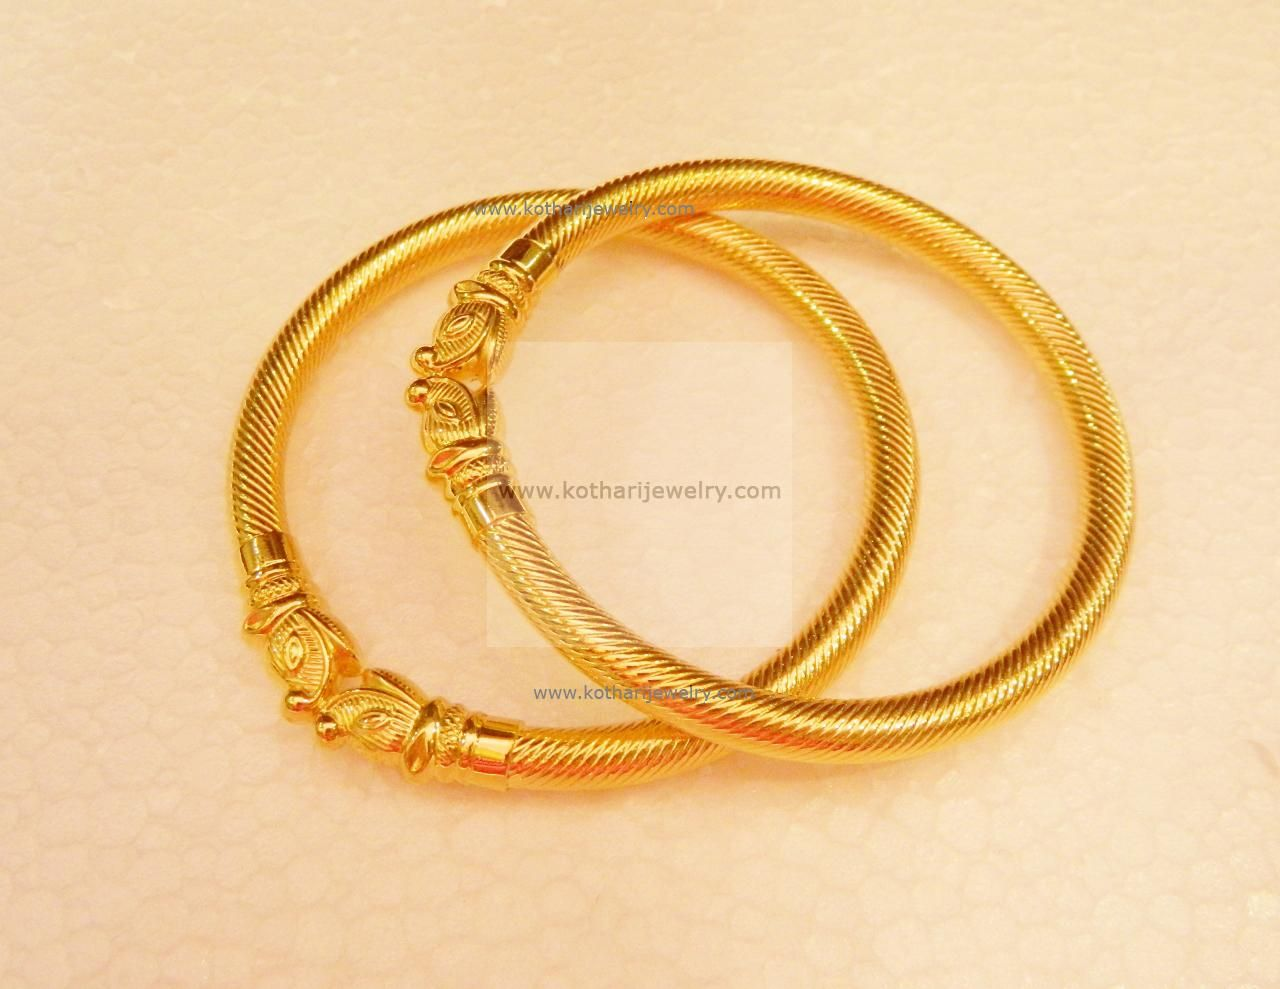 Bangles kada gold bangles kada bg at usd